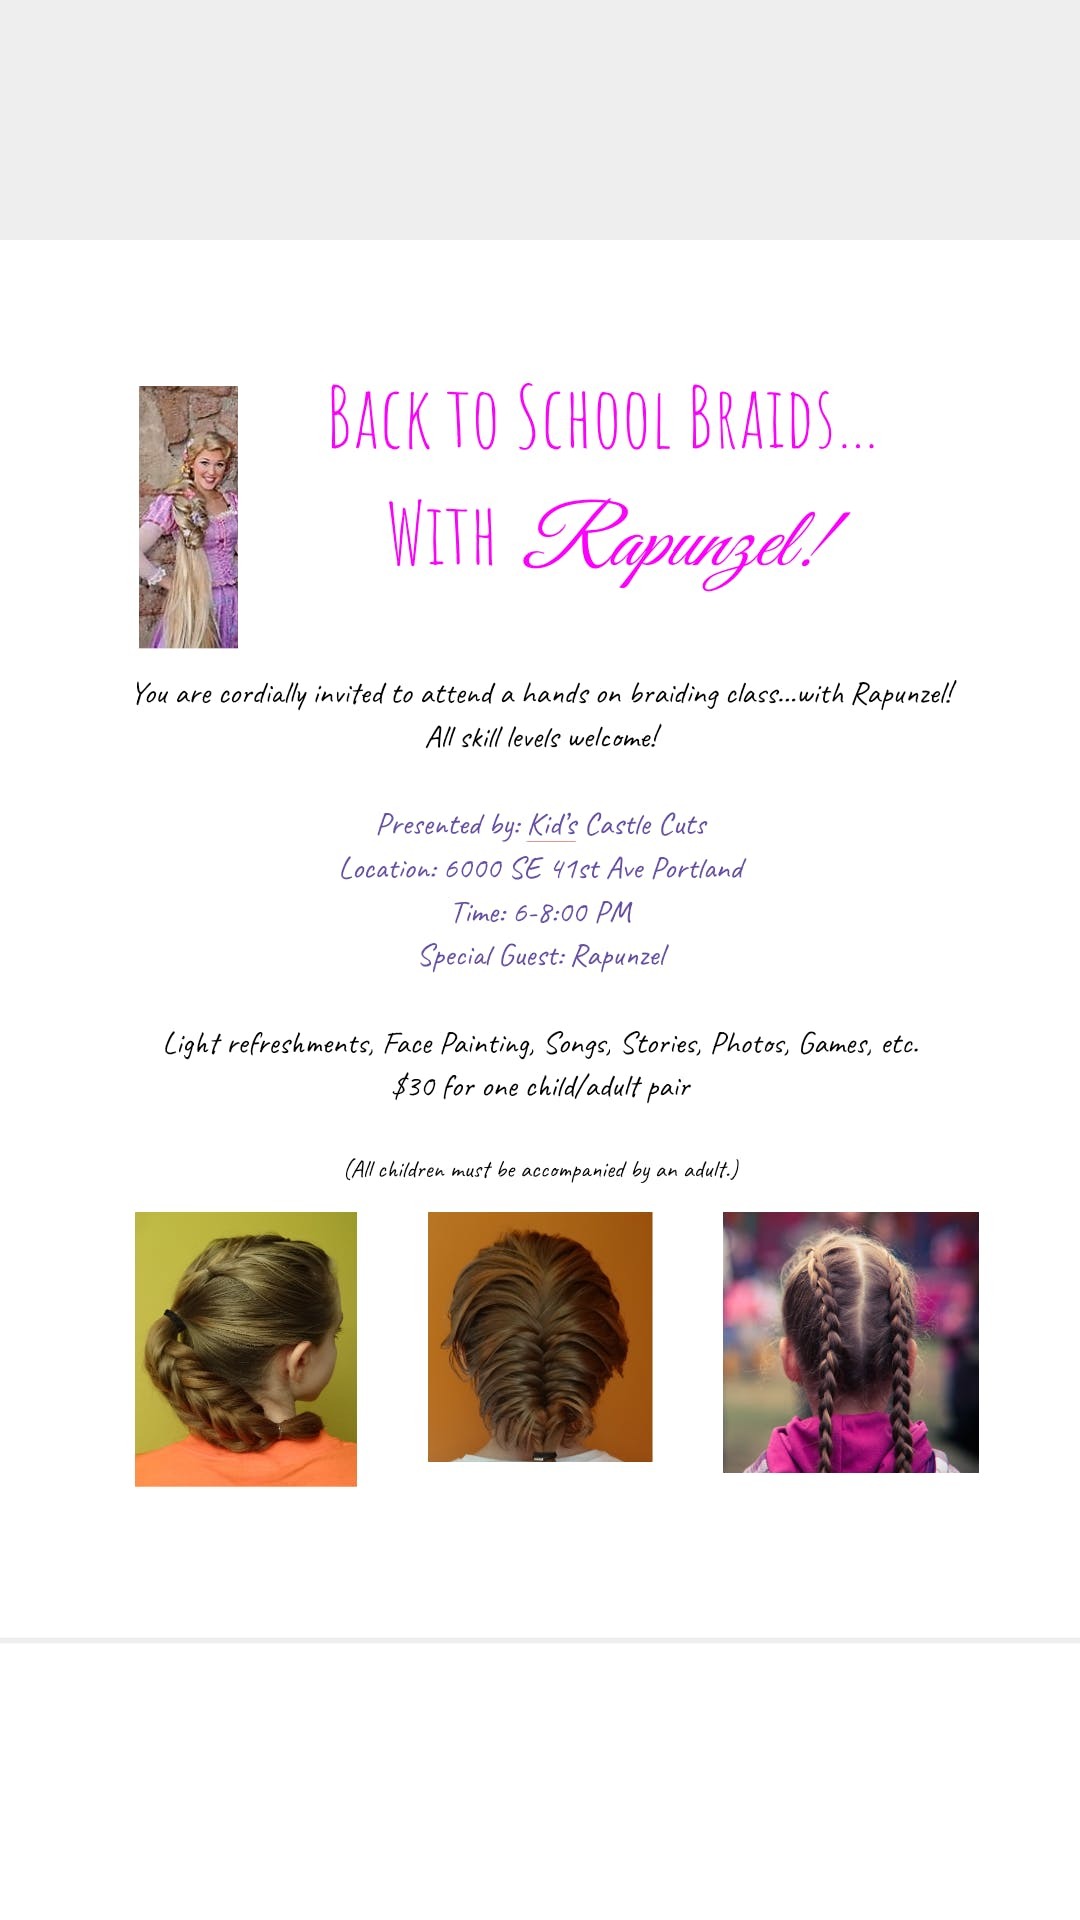 Back to School Braids with Rapunzel